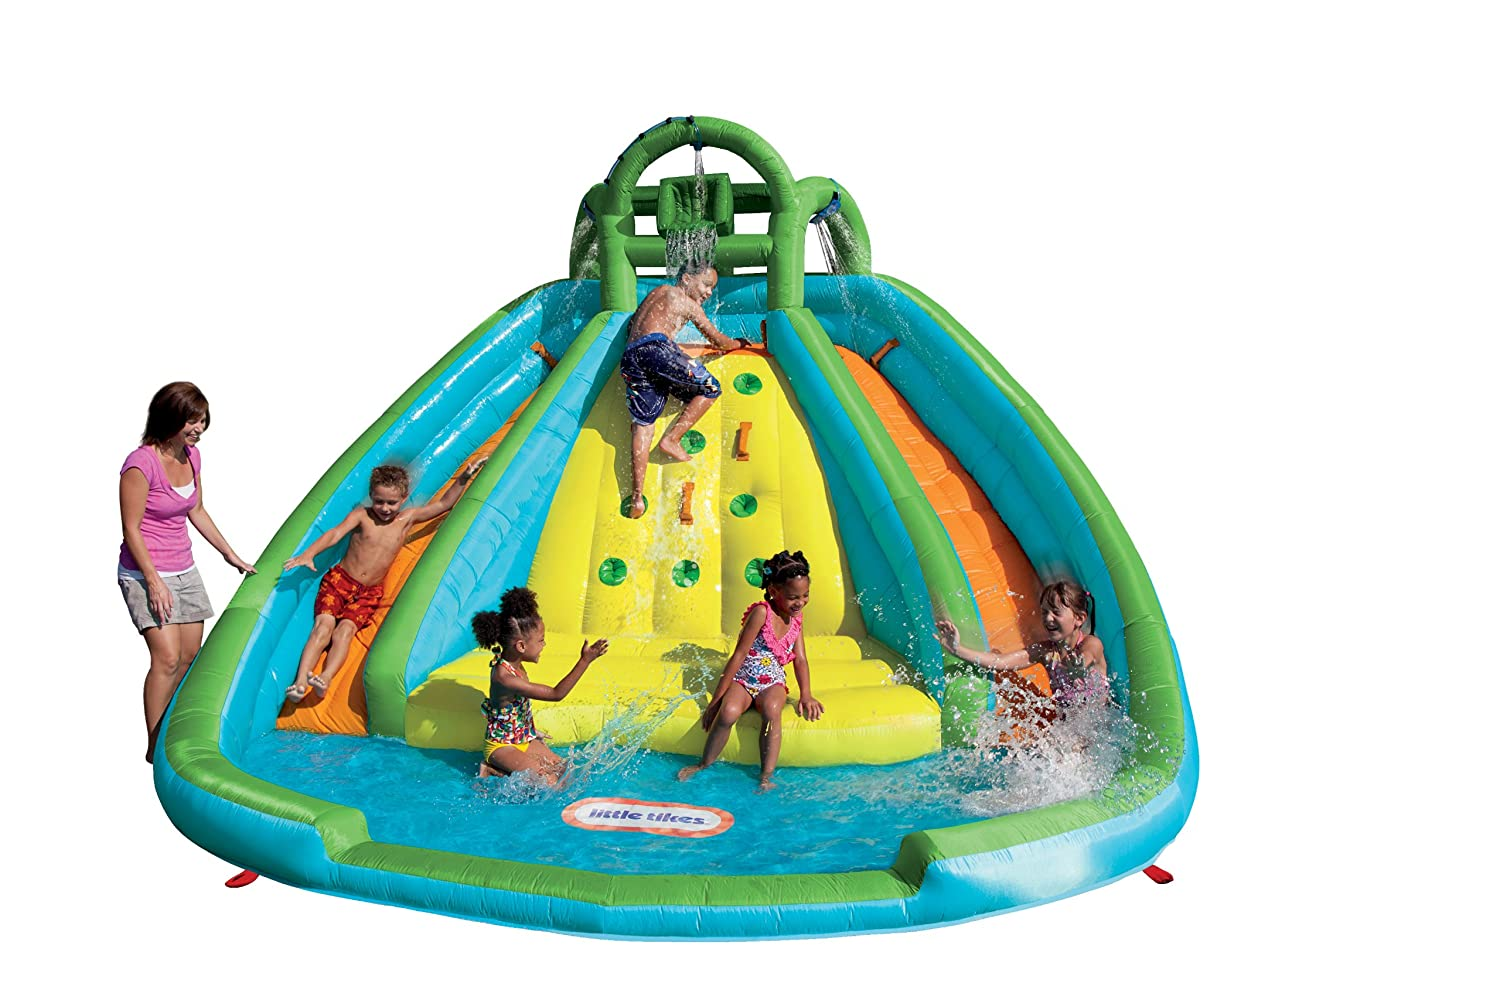 Top 7 Best Water Slide Pools Inflatable Reviews in 2021 9